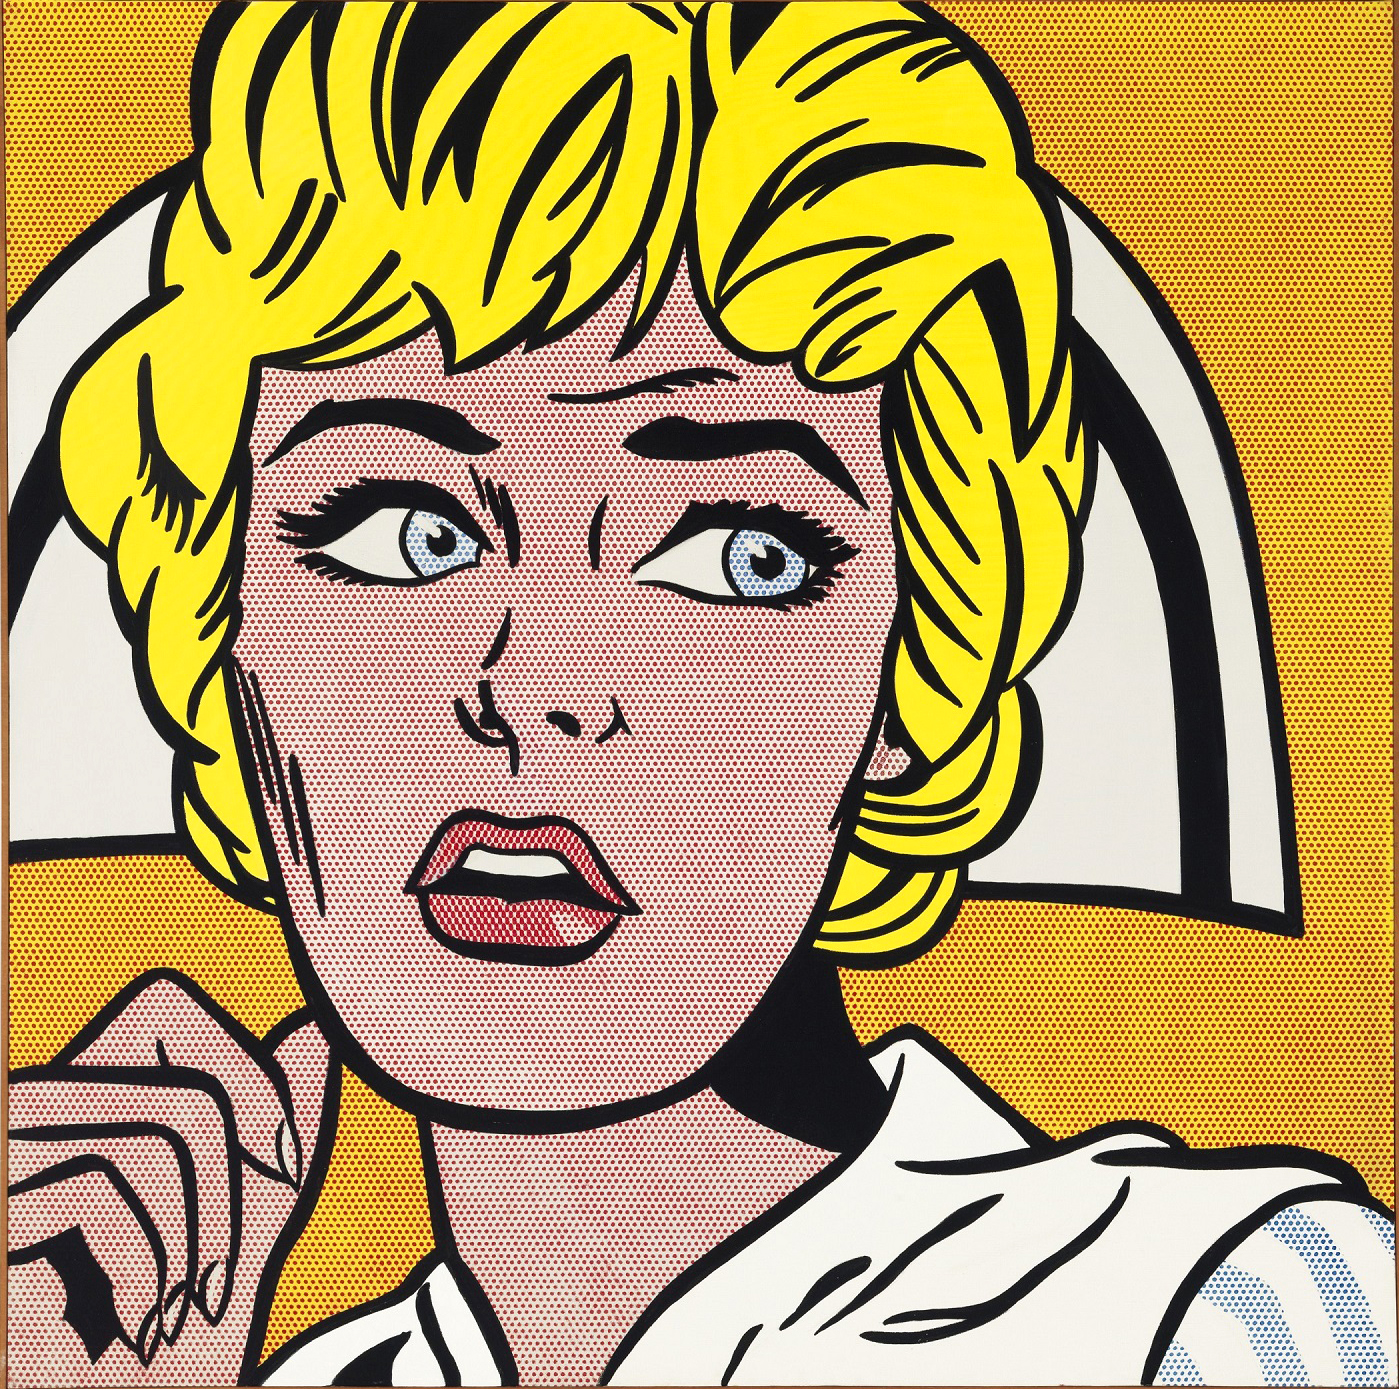 Roy Lichtenstein (1923-1997) Nurse Christie's 9 novembre 2015 New York 95,365,000 U.S. dollars